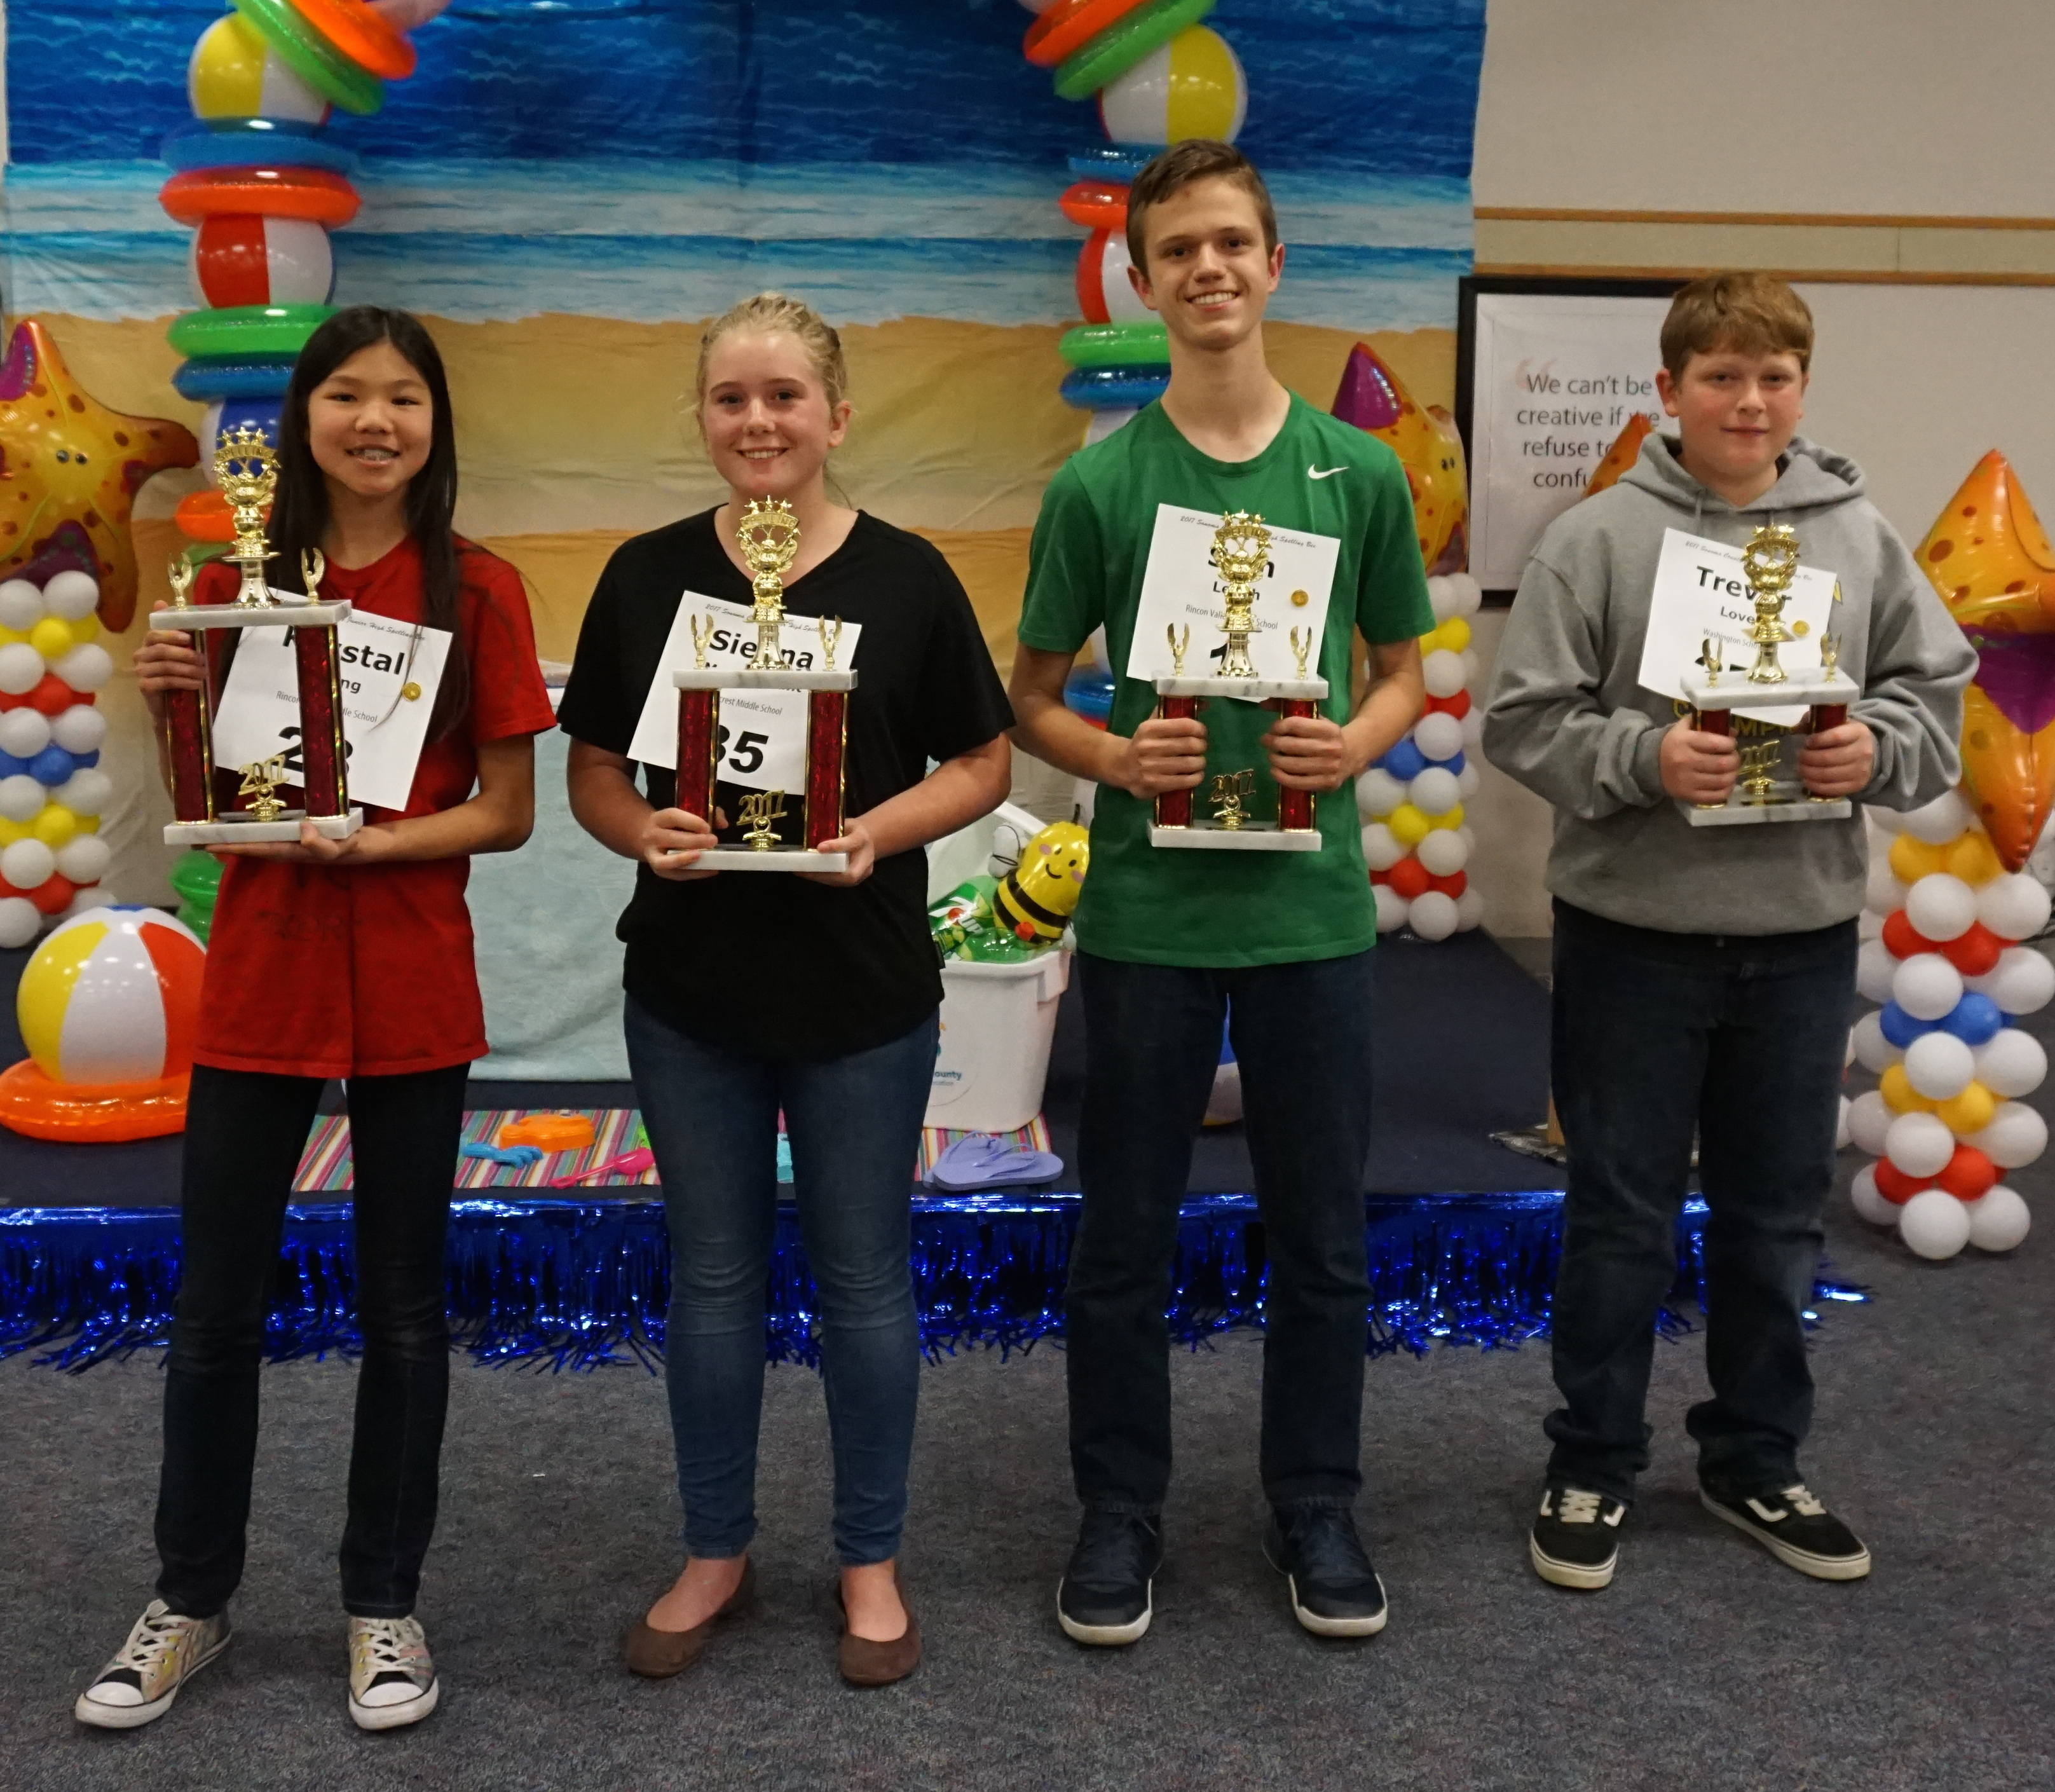 Junior High Spellers